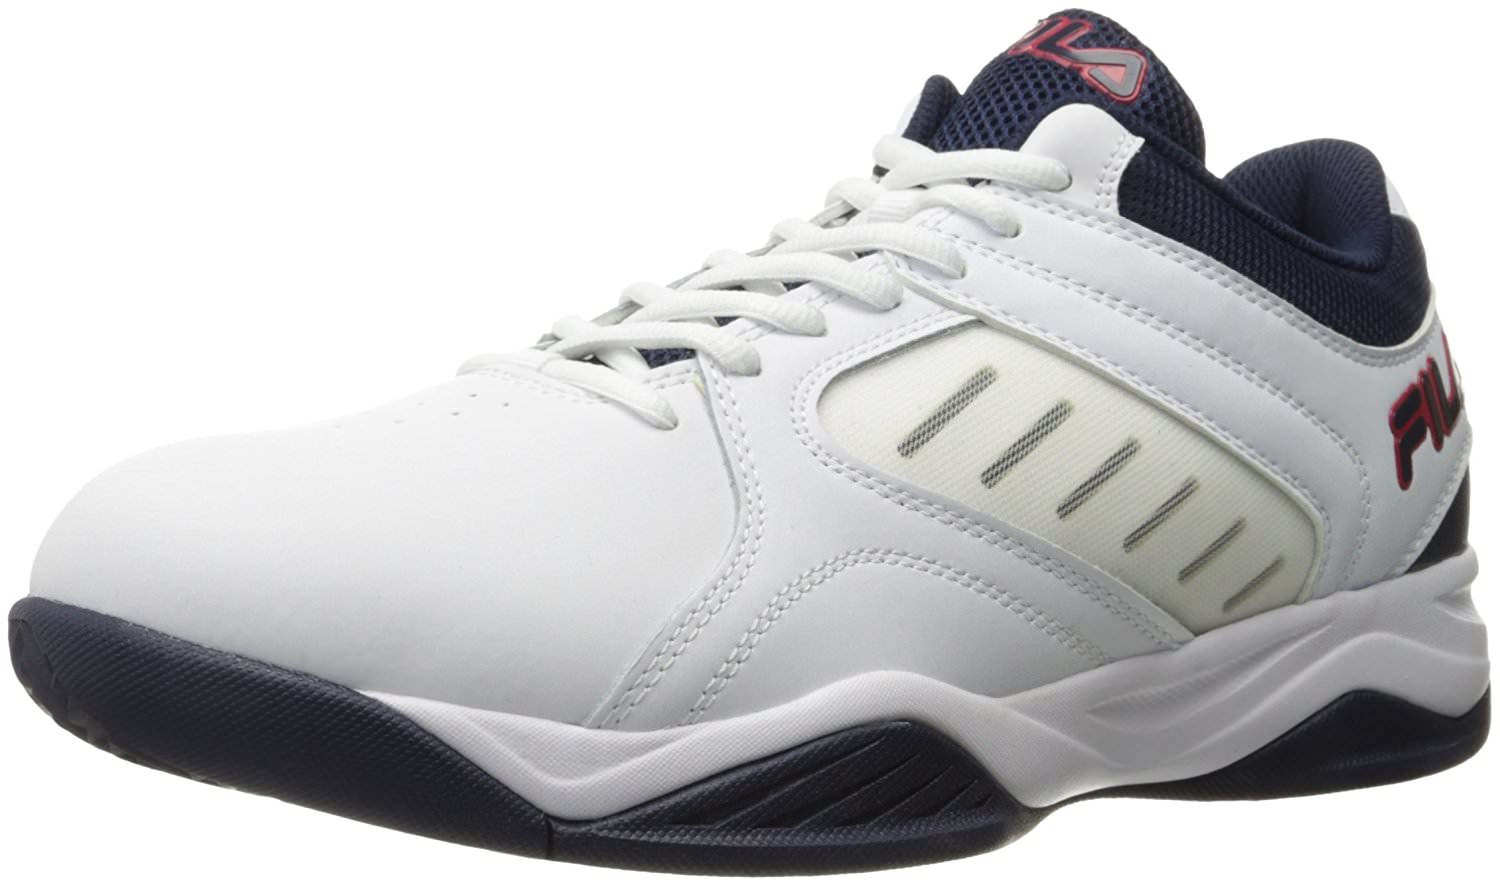 Fila BANK Mens Low Top Athletic Basketball Sneakers Shoes by Fila